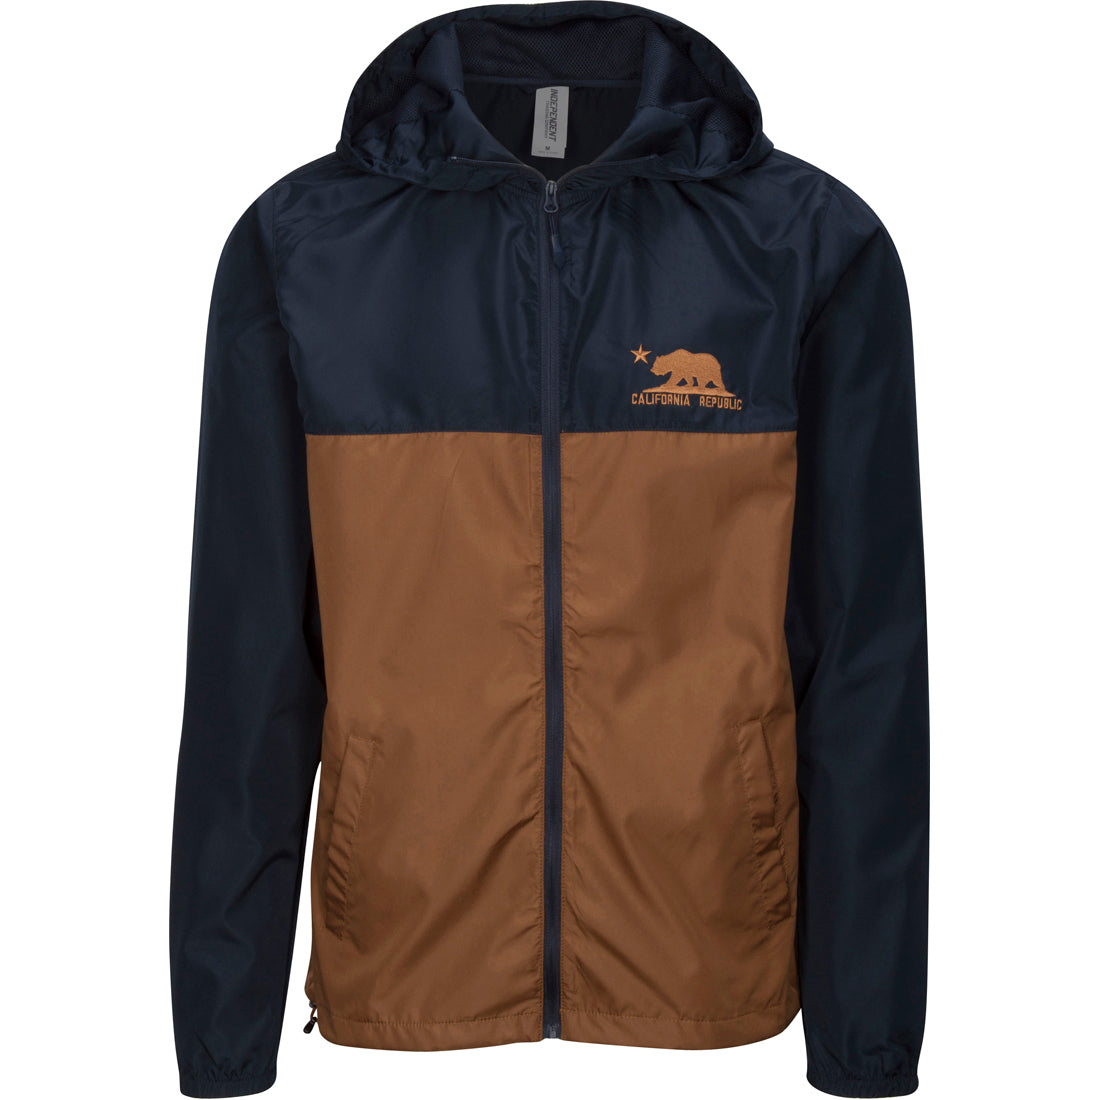 California Republic Embroidered Light Weight Windbreaker Zip Jacket - Navy/Saddle